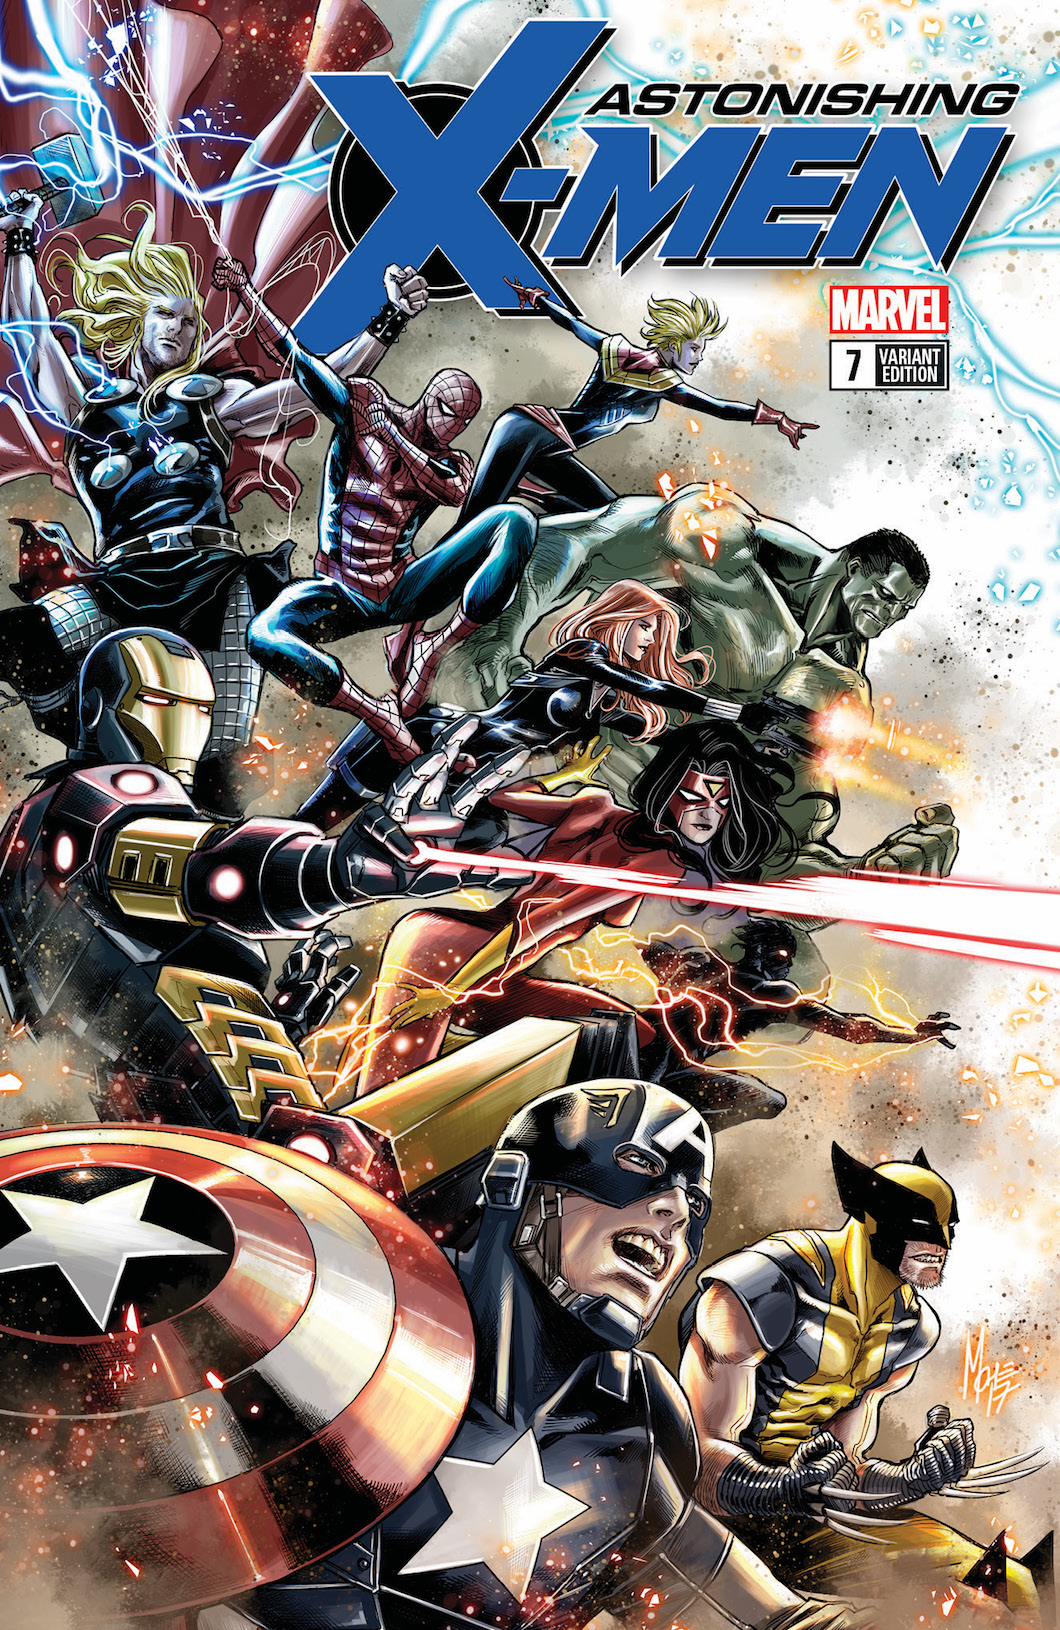 Earth's Mightiest Heroes are celebrated this January in Avengers variants